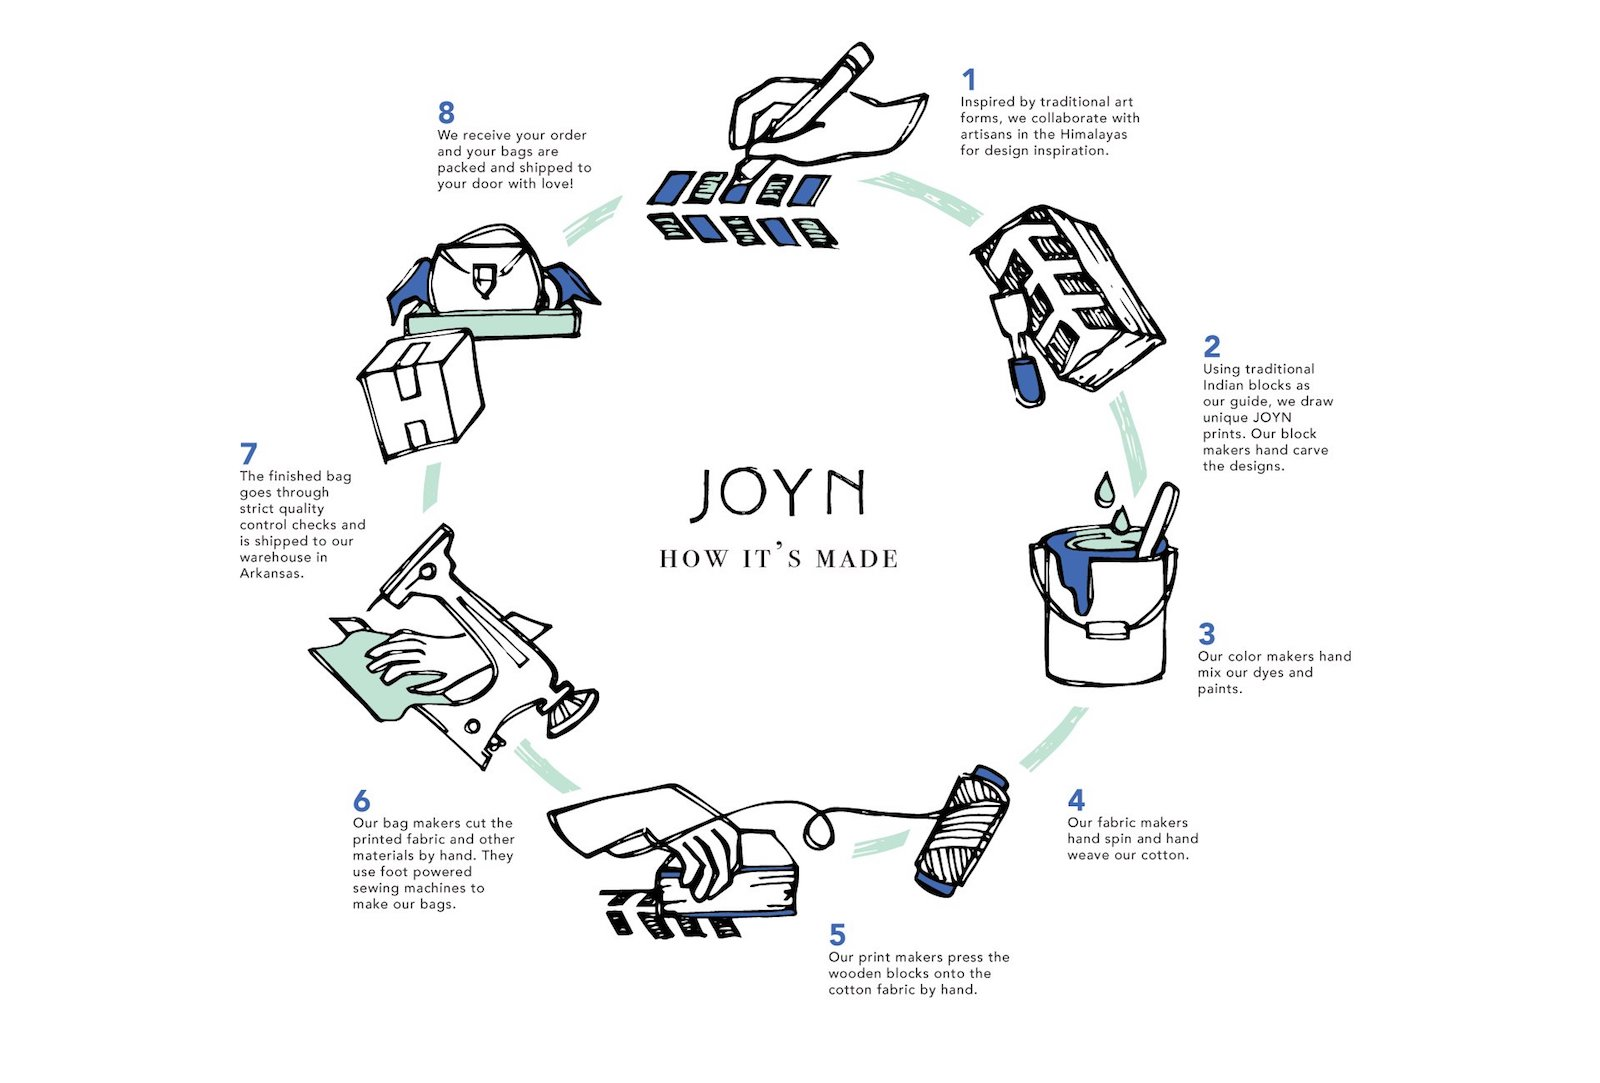 joyn bags how they're made